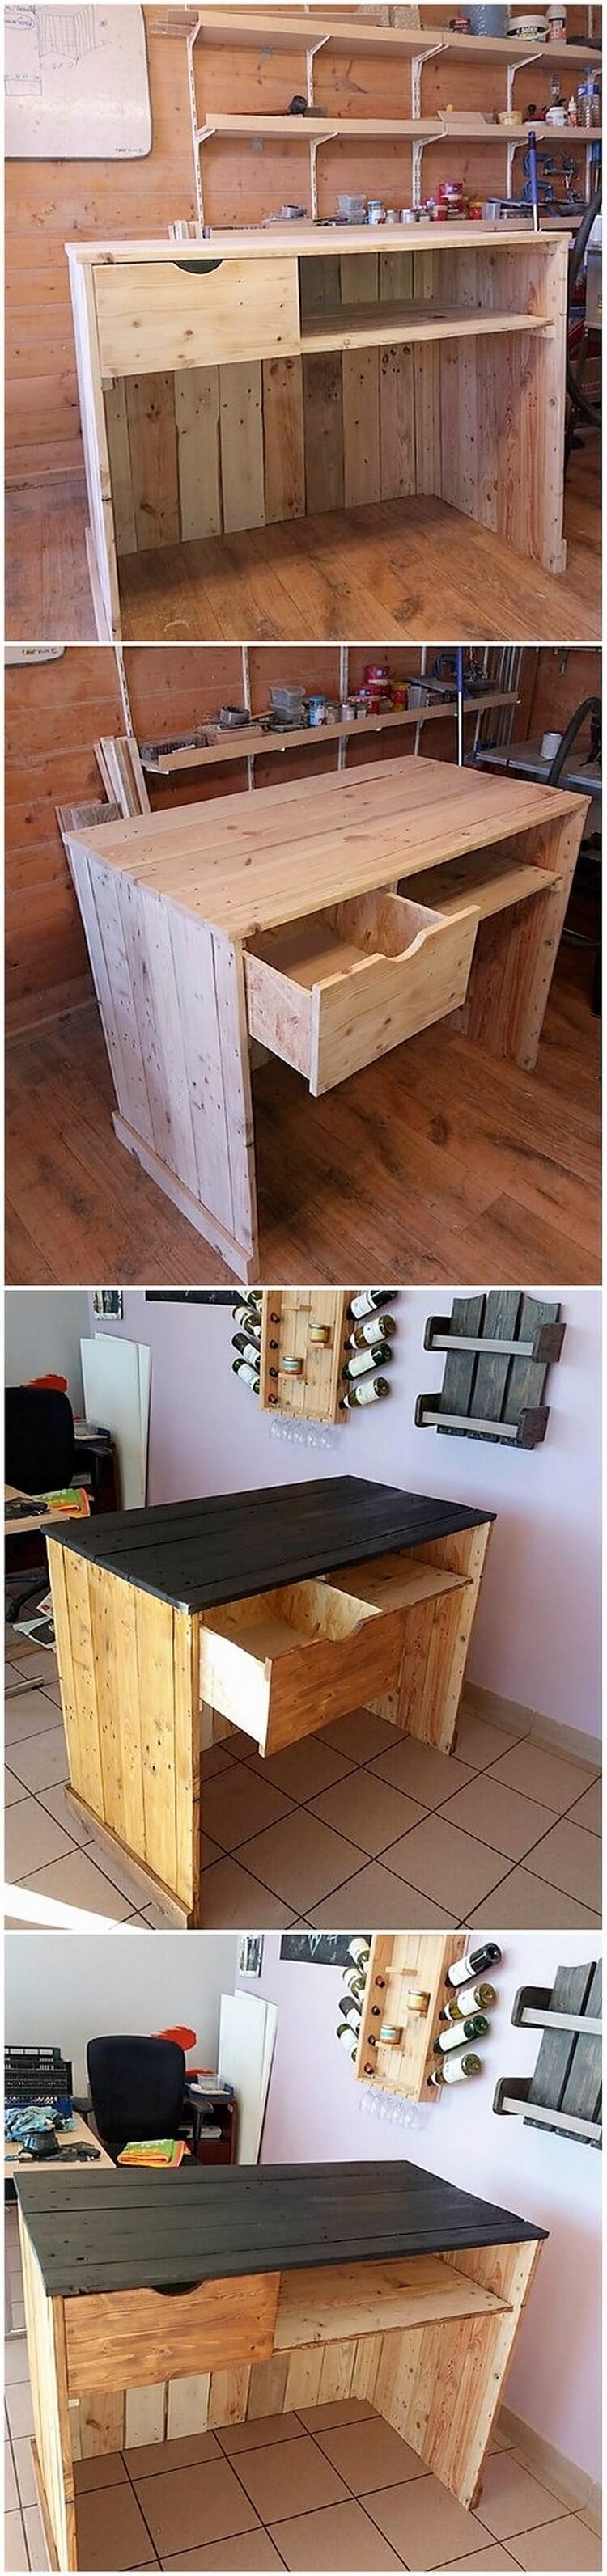 Pallet Desk or Table